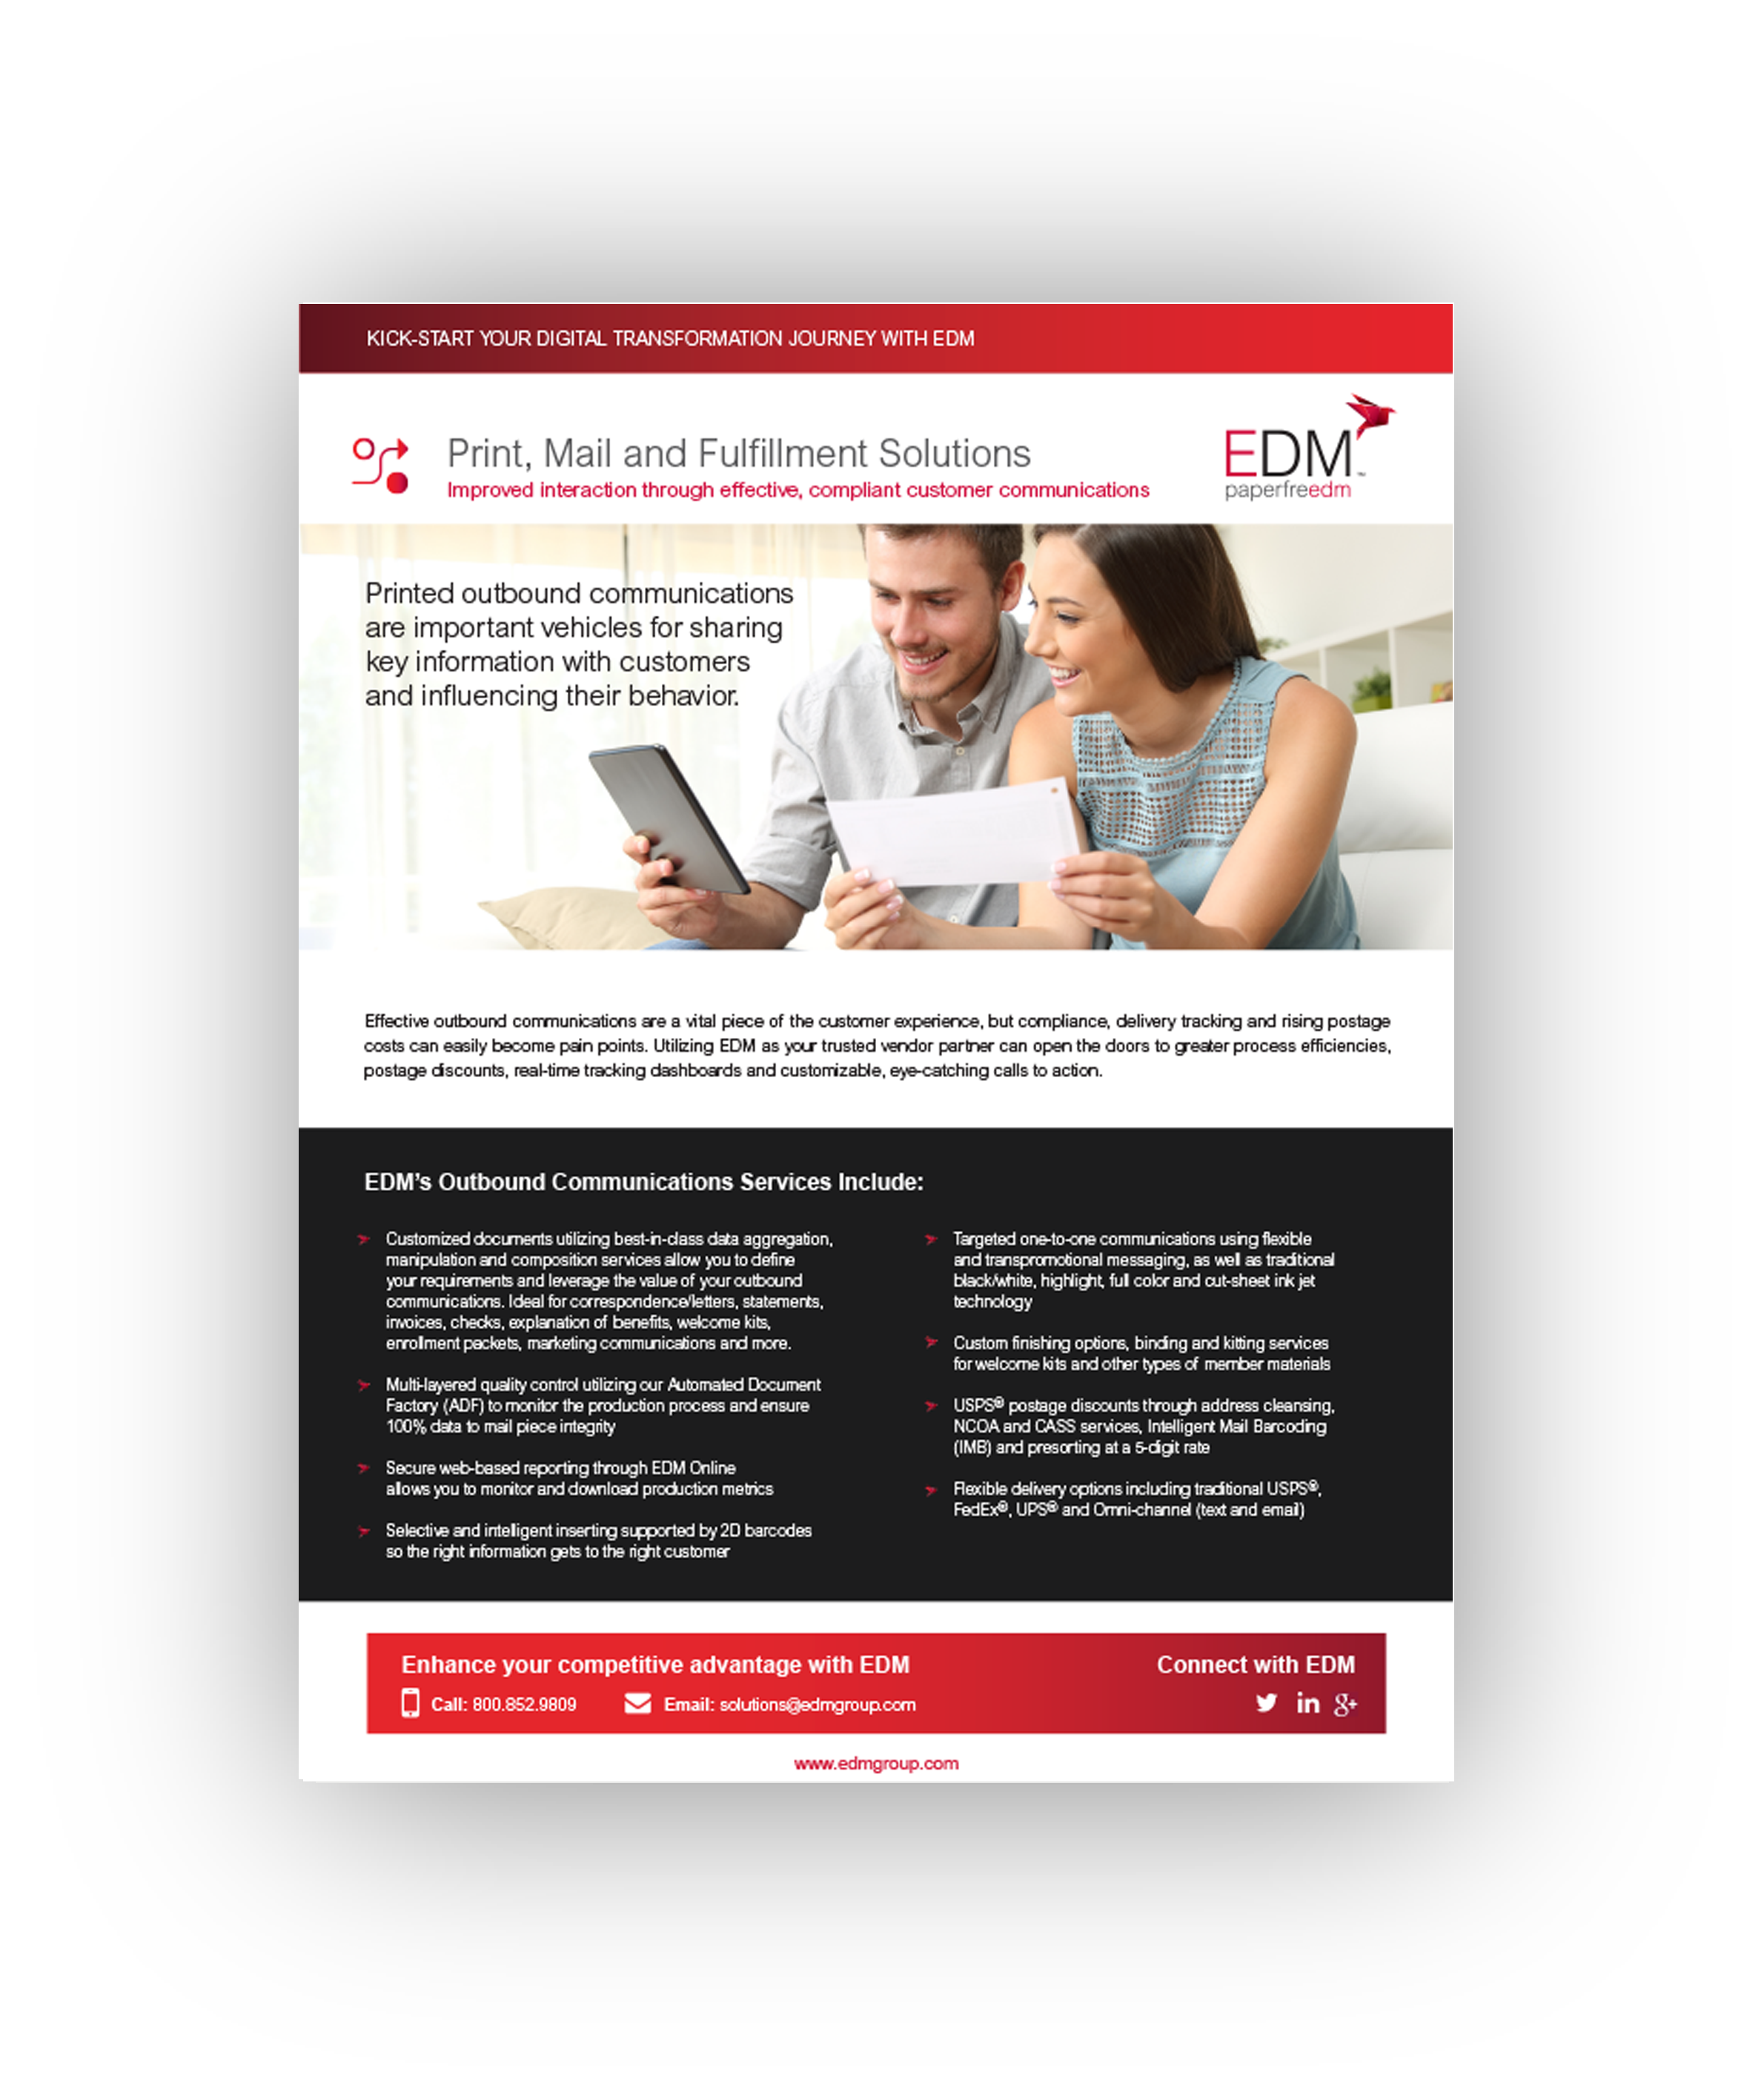 print-mail-fulfillment-solutions-1